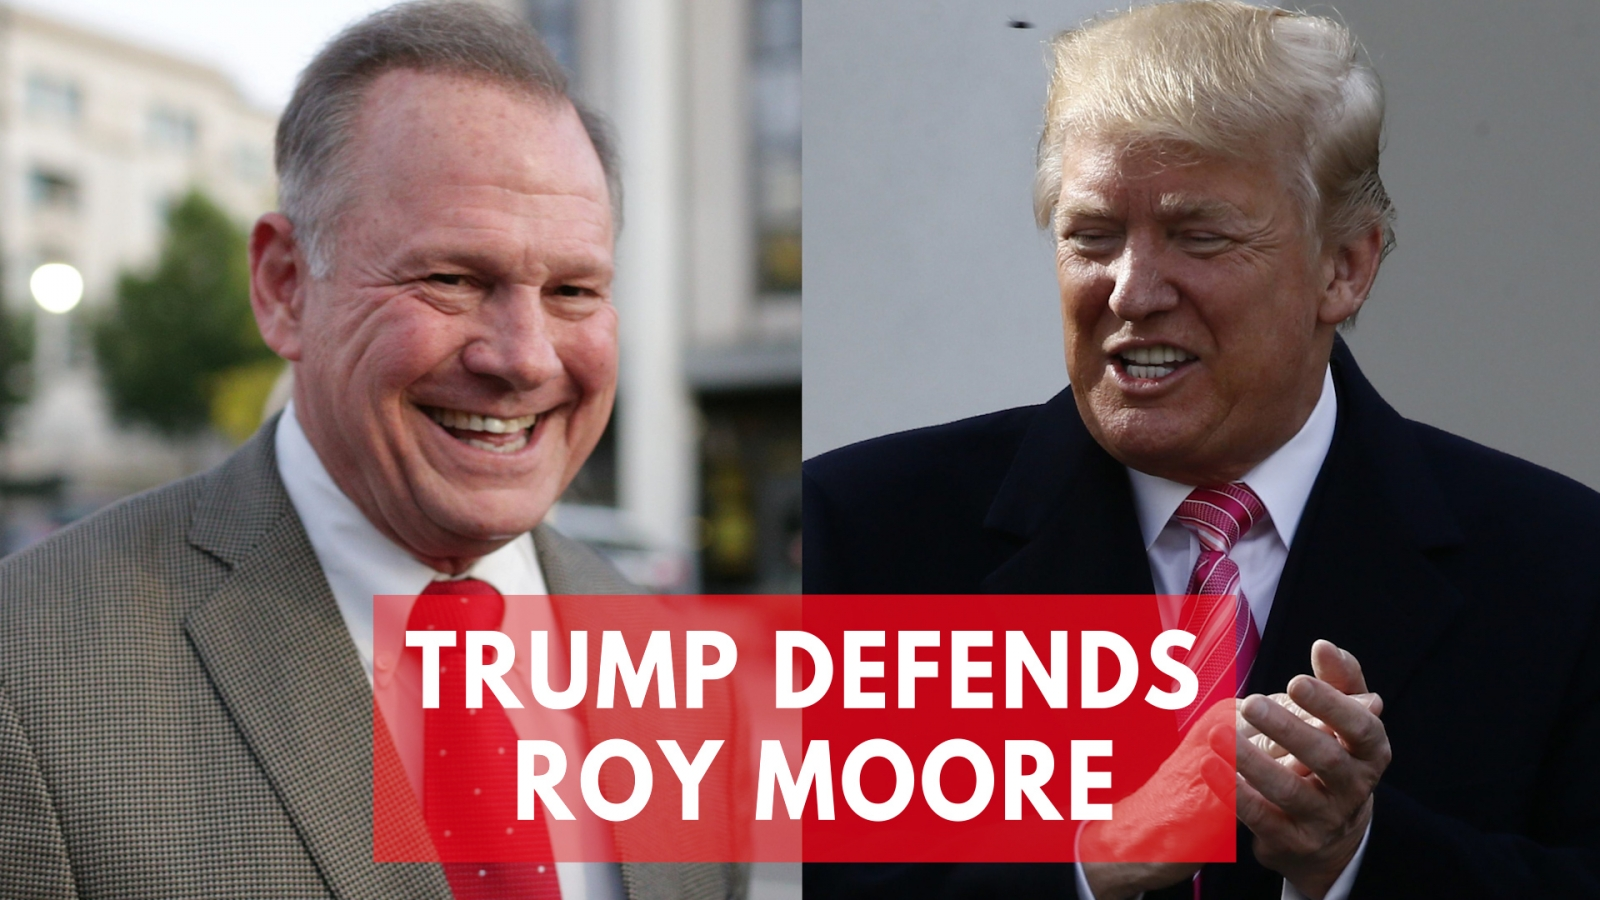 Trump defends Roy Moore: 'He totally denies It'